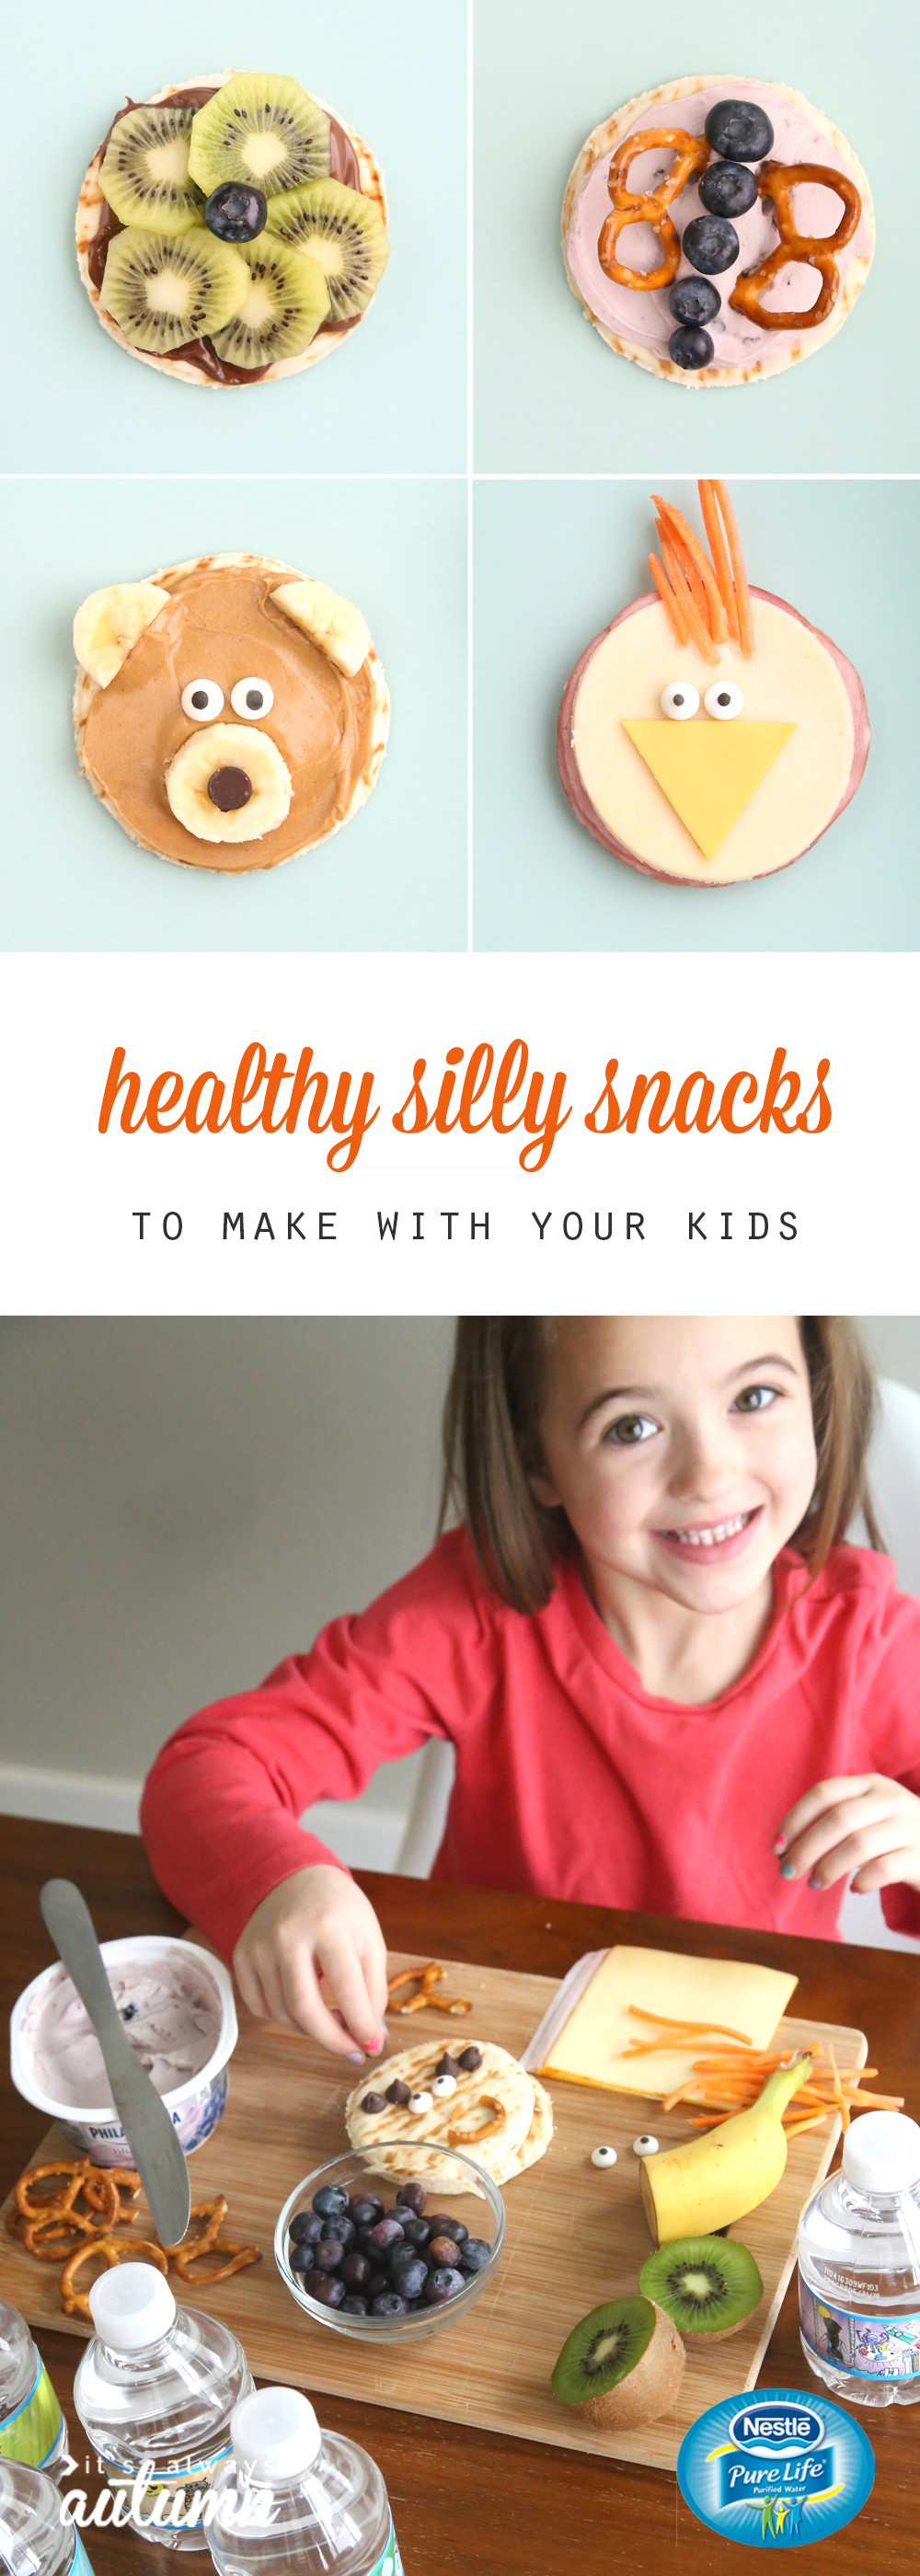 Easy Healthy Snacks To Make  silly snacks to make with your kids easy healthy It